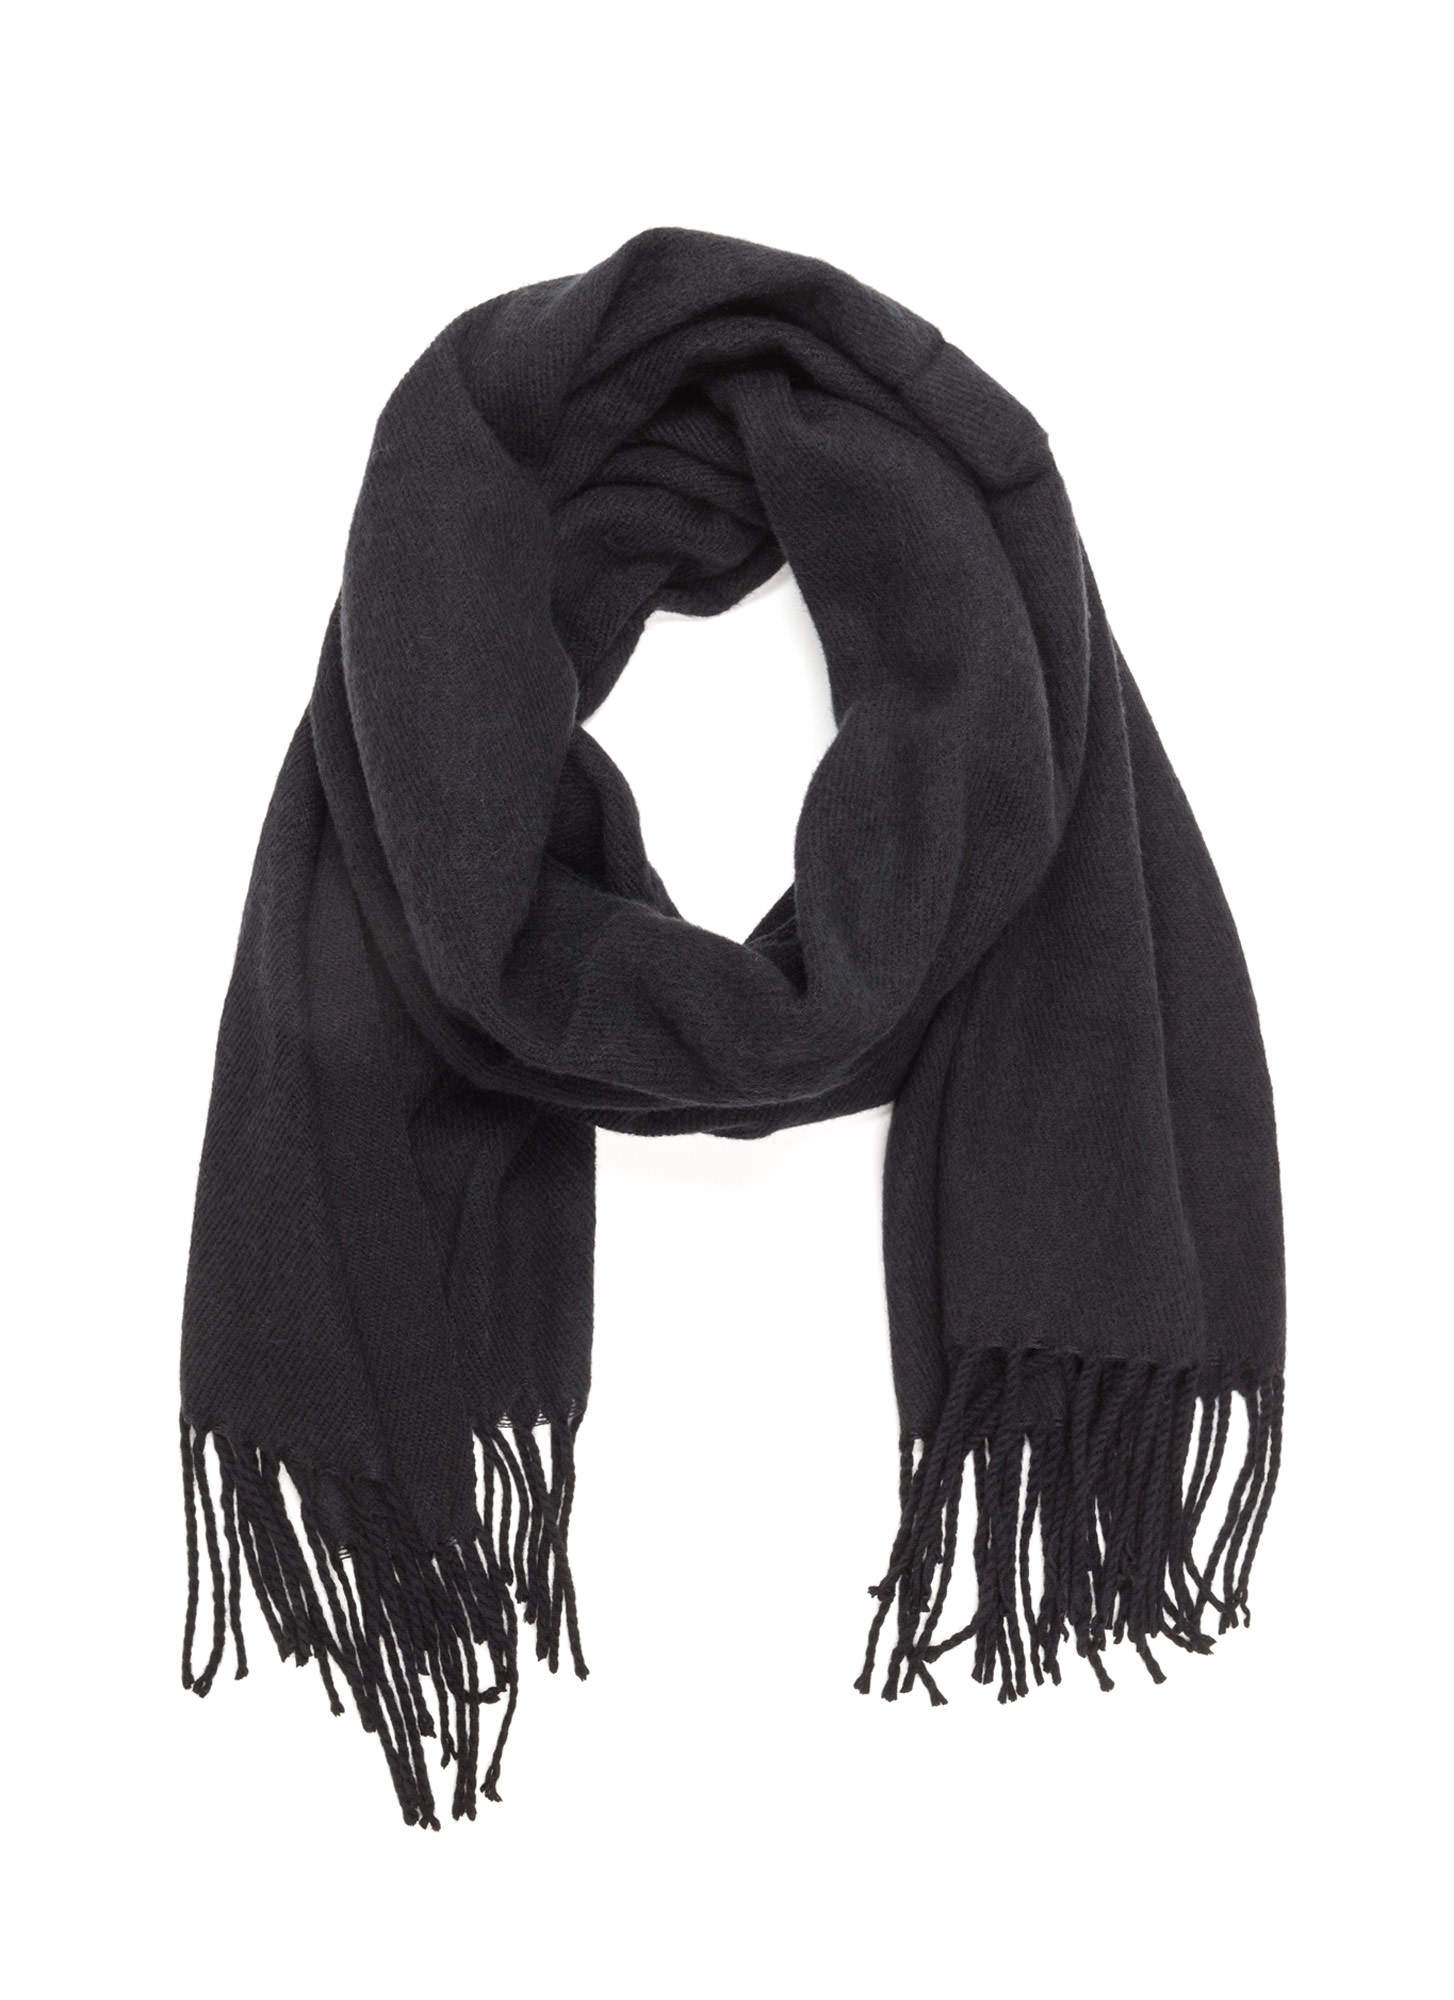 Executive Chic Fringed Scarf BLACK